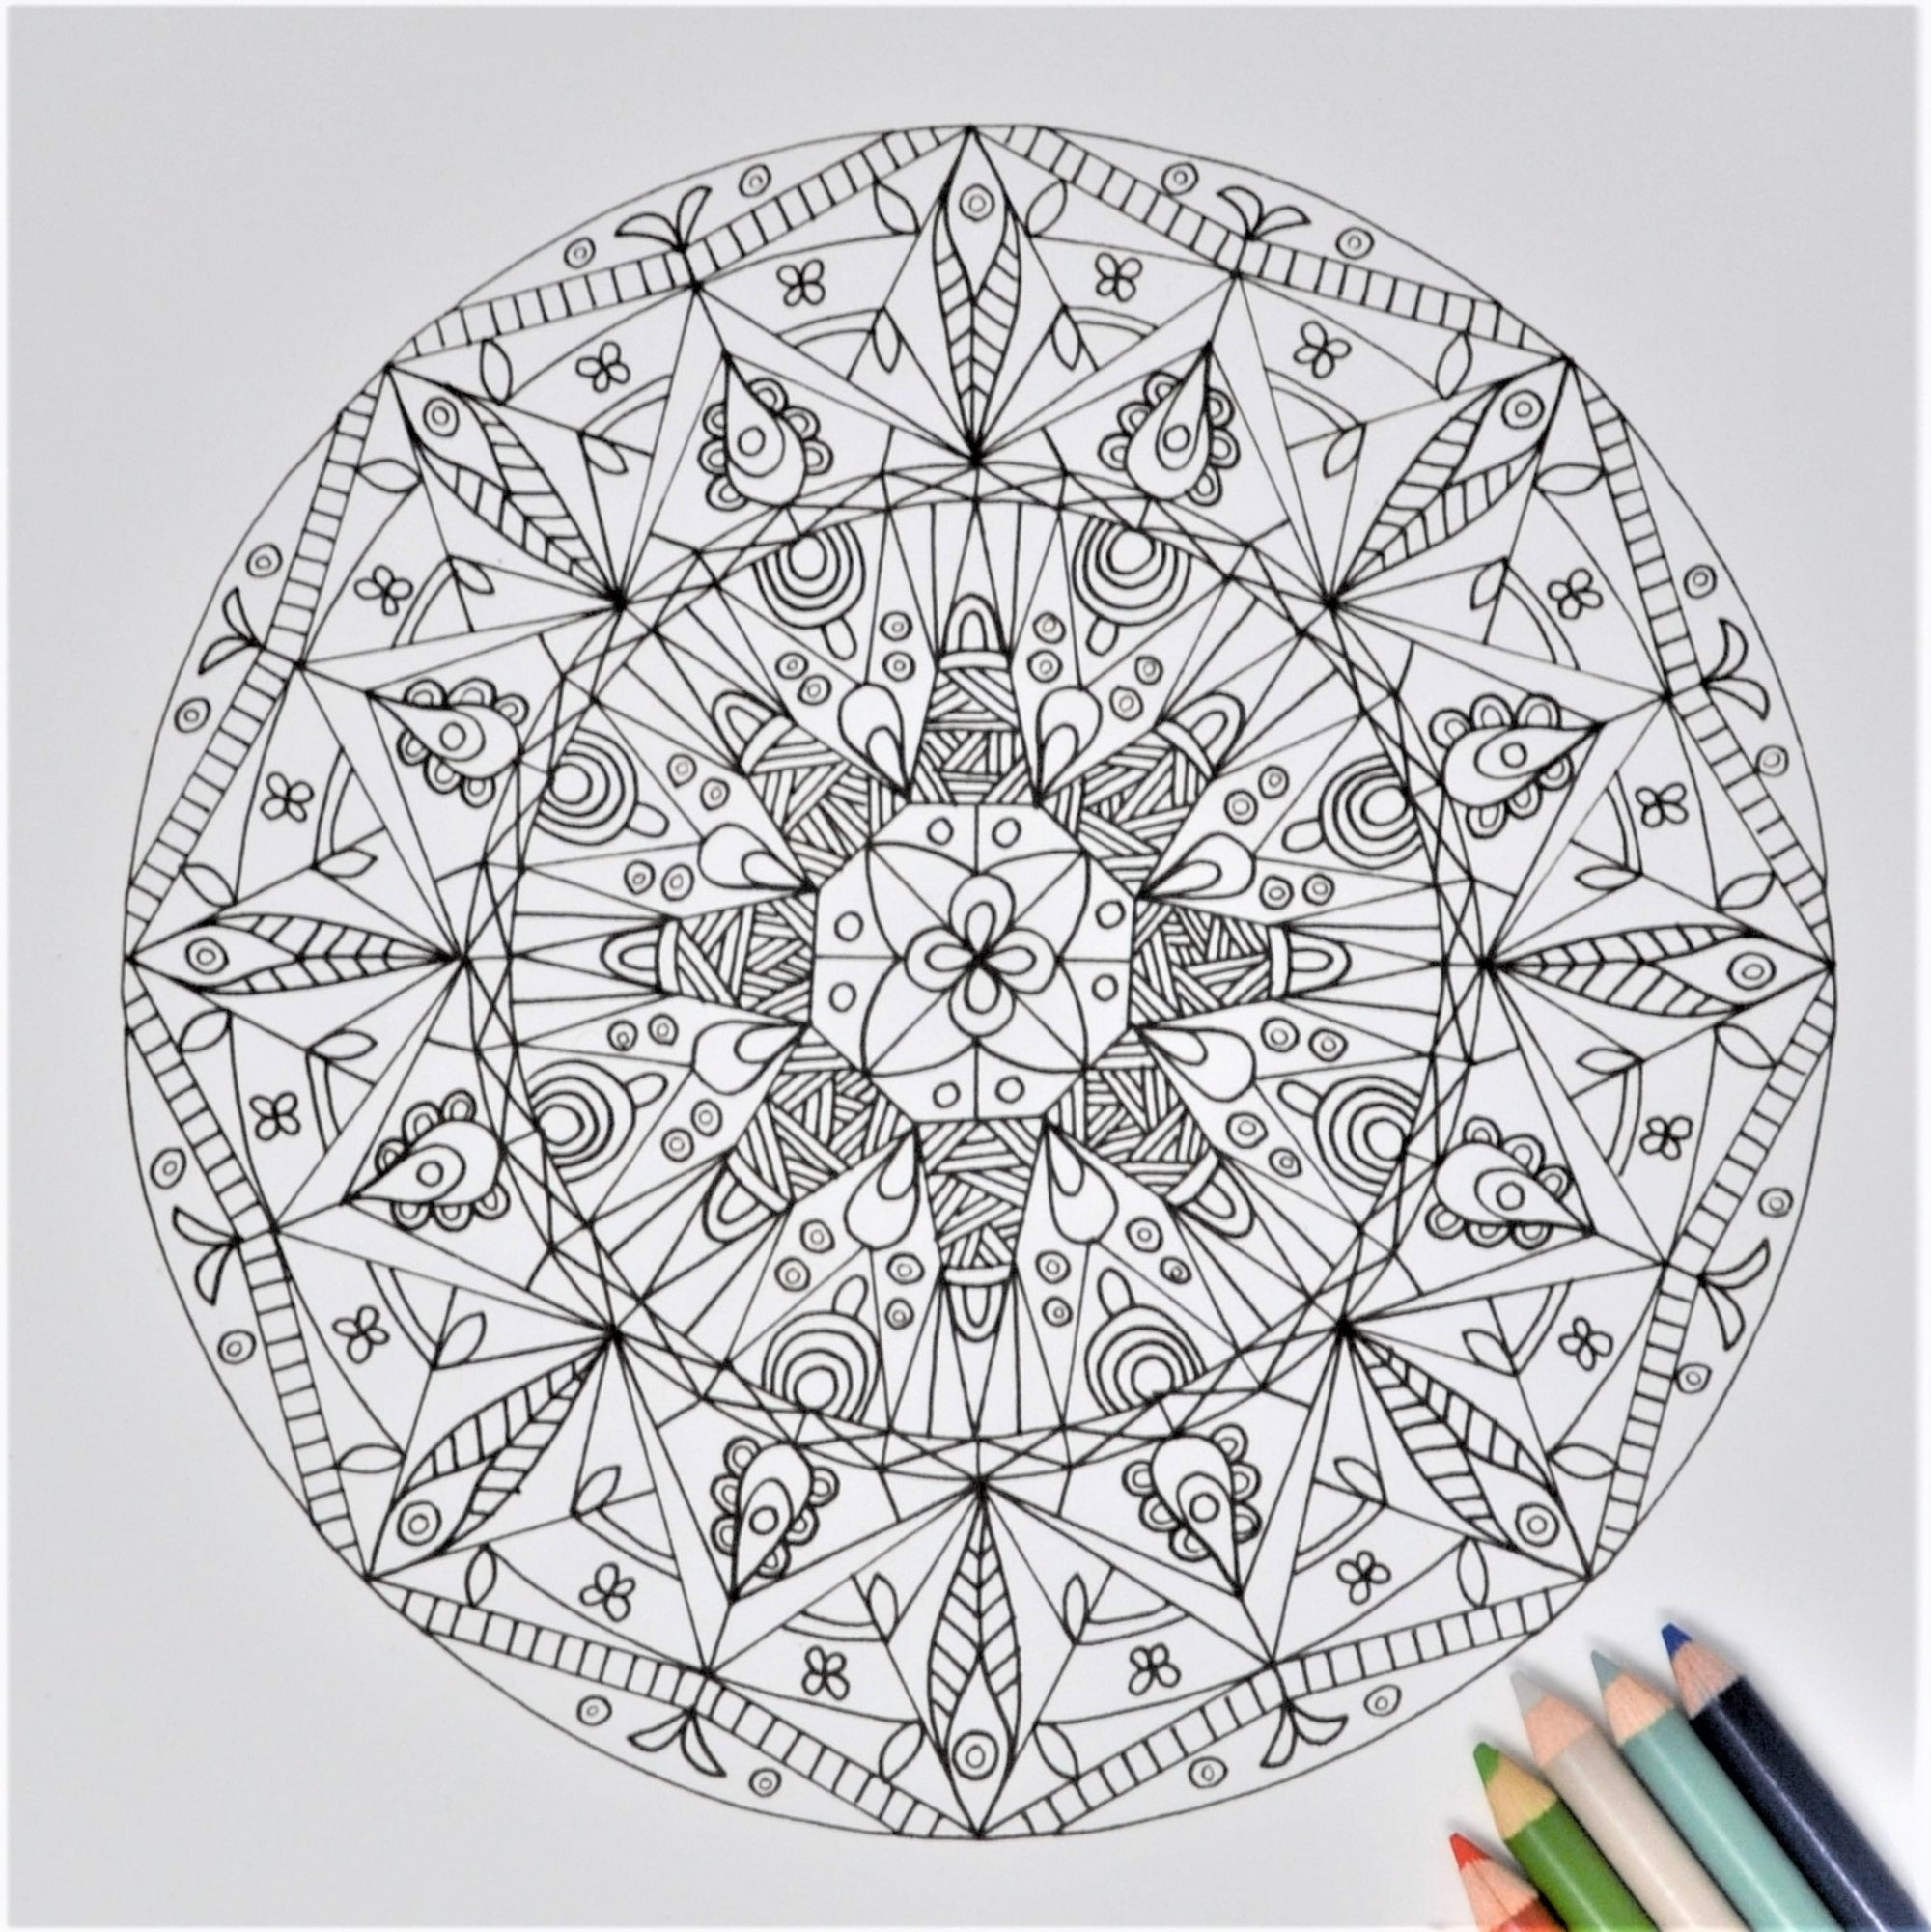 photograph relating to Printable Adult Coloring Pages Pdf named Meditative Mandalas - Printable Grownup Coloring E book PDF with